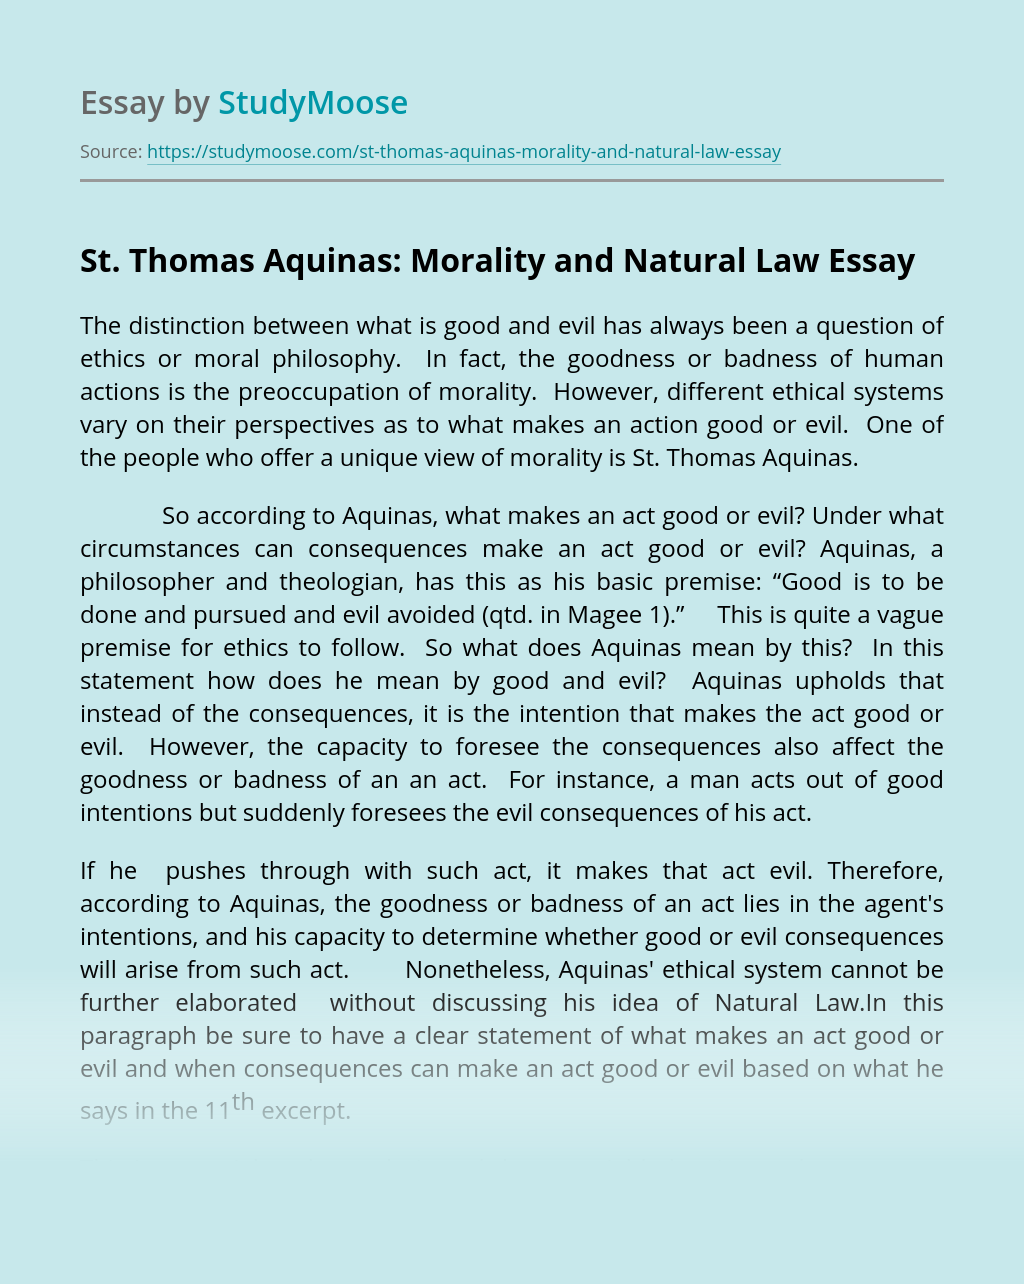 St. Thomas Aquinas: Morality and Natural Law